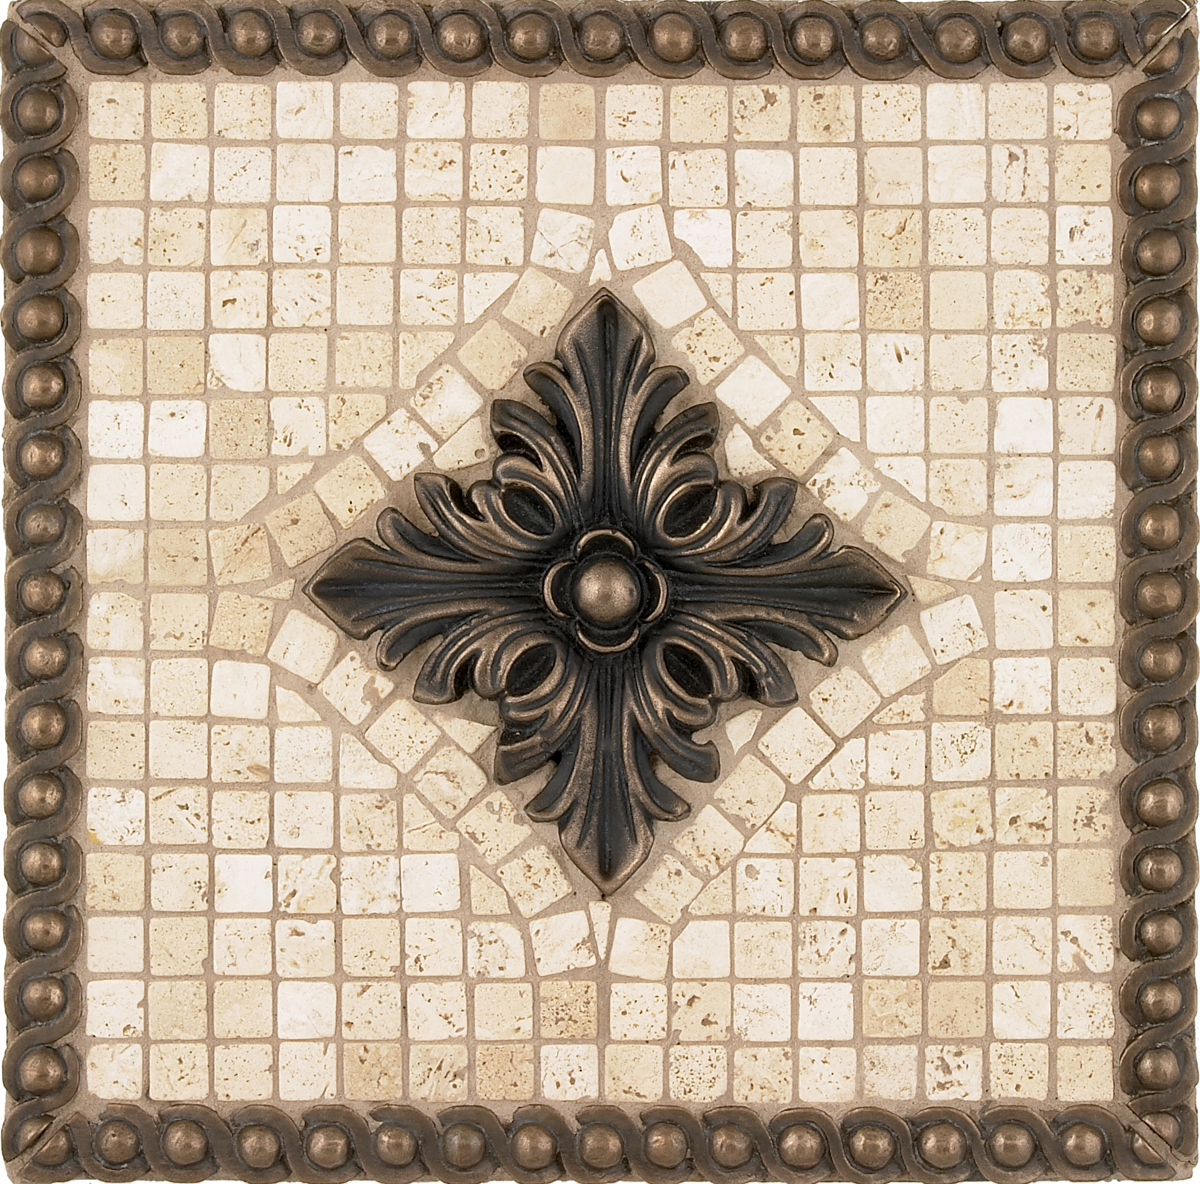 Metal Mural Tribecca Mosaic Tile Backsplash